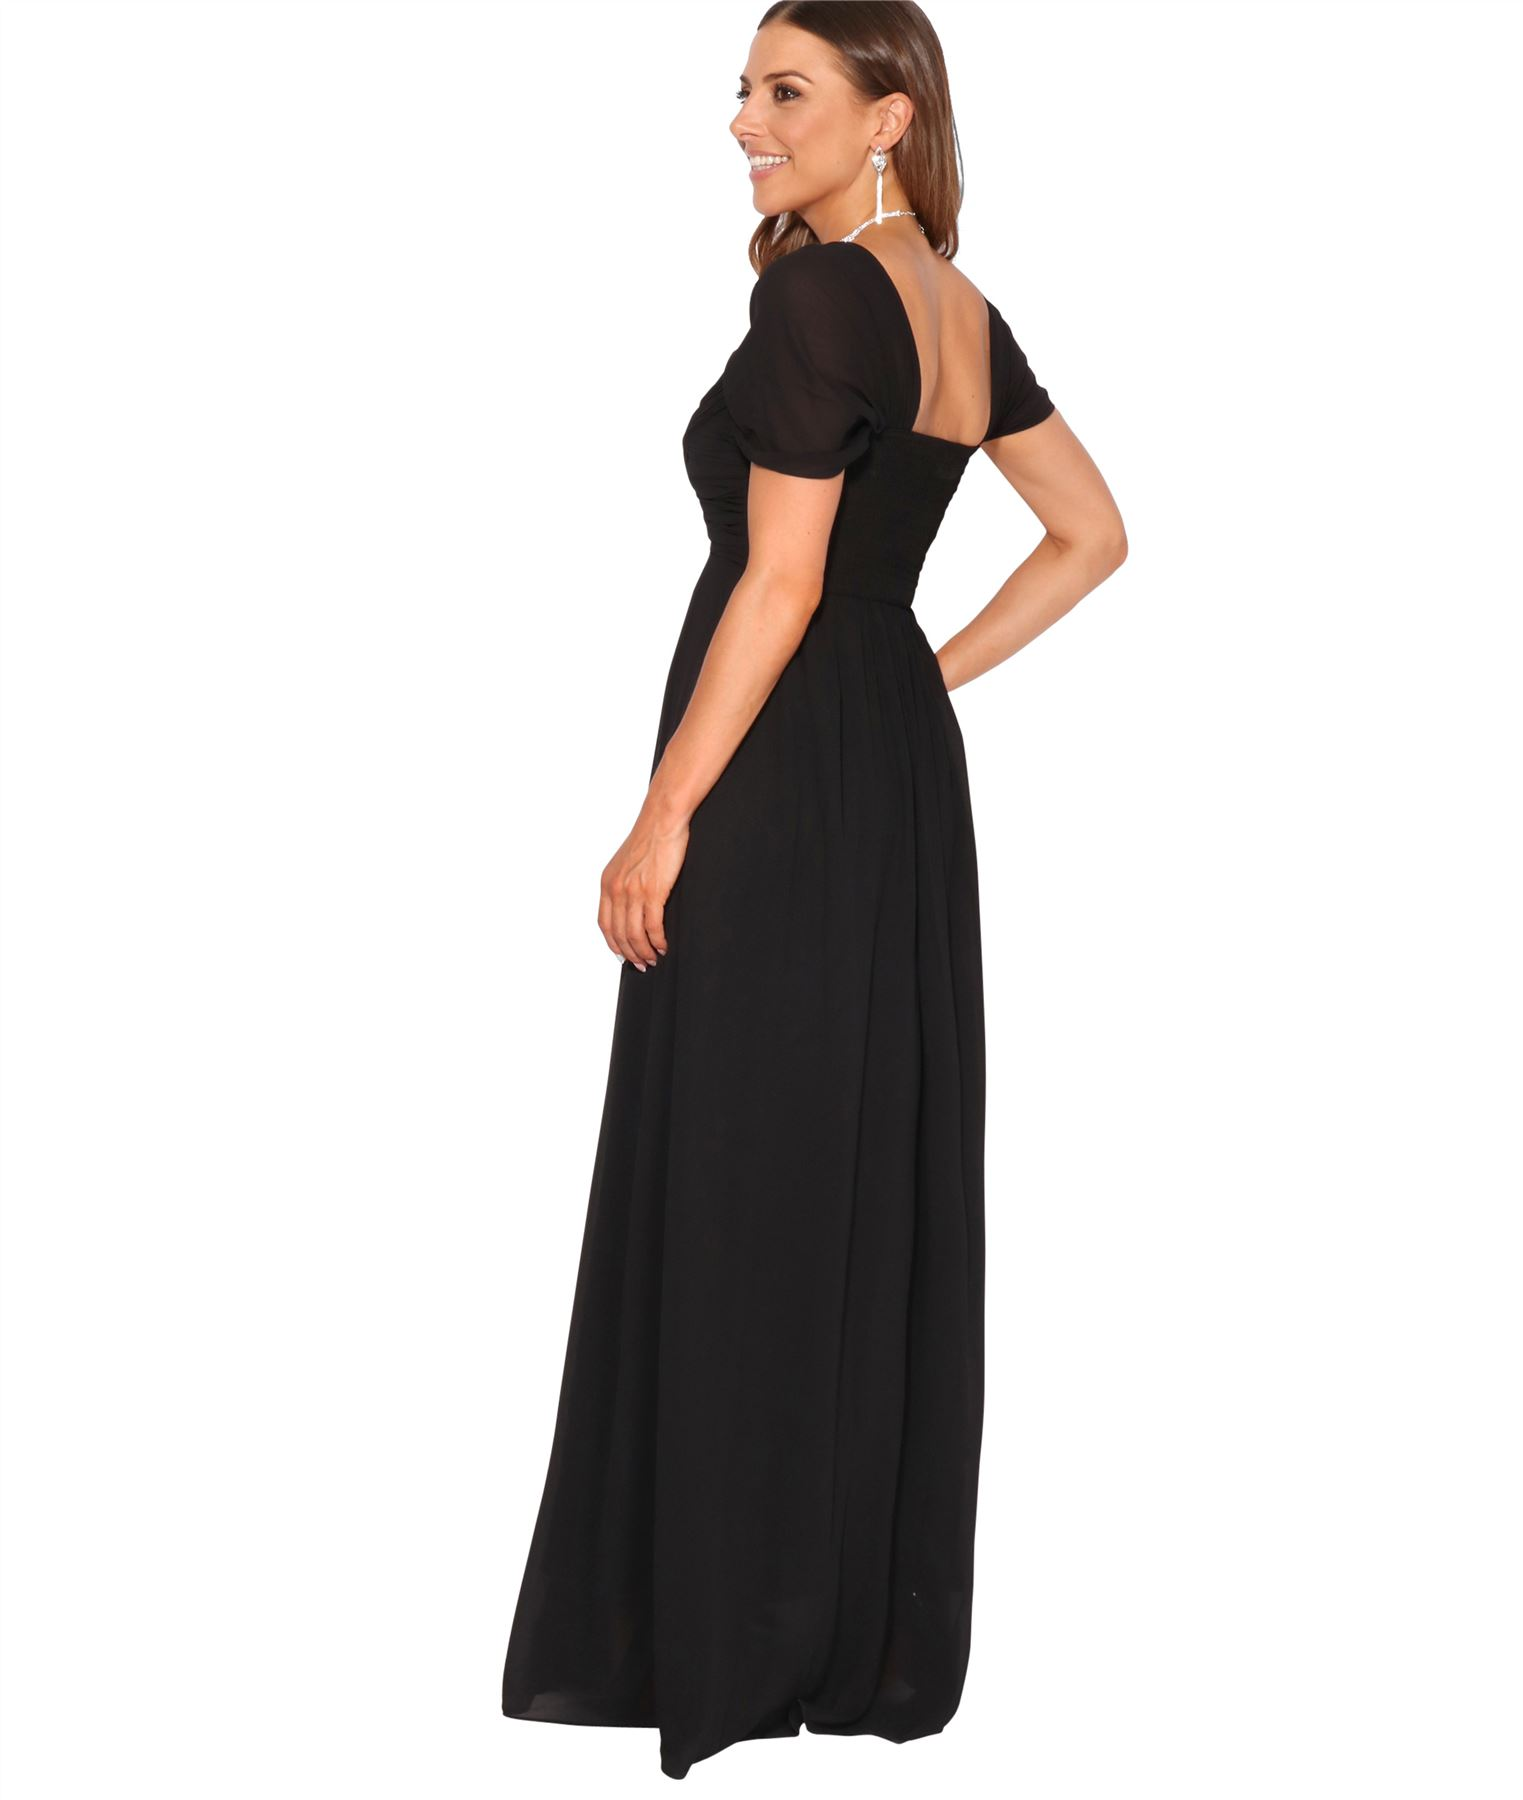 Womens-Formal-Evening-Wedding-Maxi-Prom-Dress-Long-On-Off-Shoulder-Ball-Gown thumbnail 14